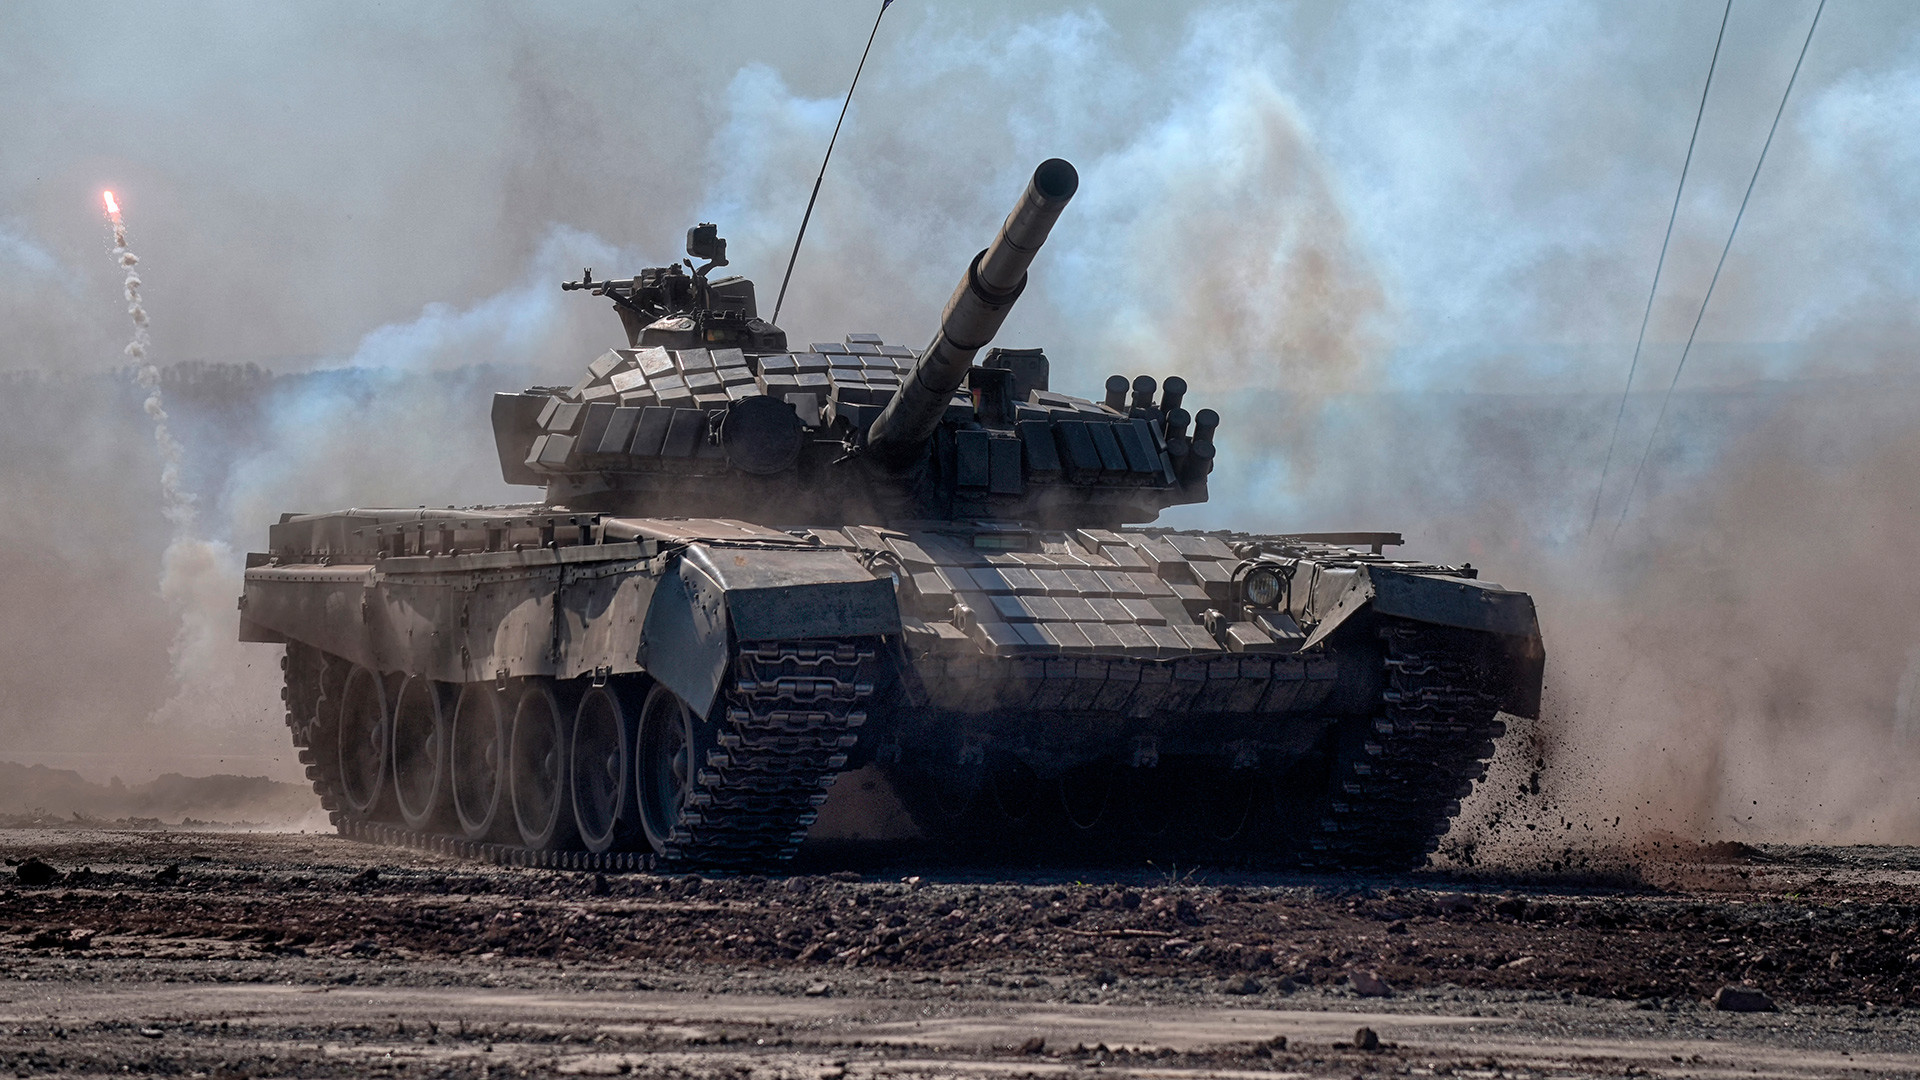 Around 700 light and heavy armored vehicles - alongside 13,000 servicemen - showed what they're capable of during the drills.